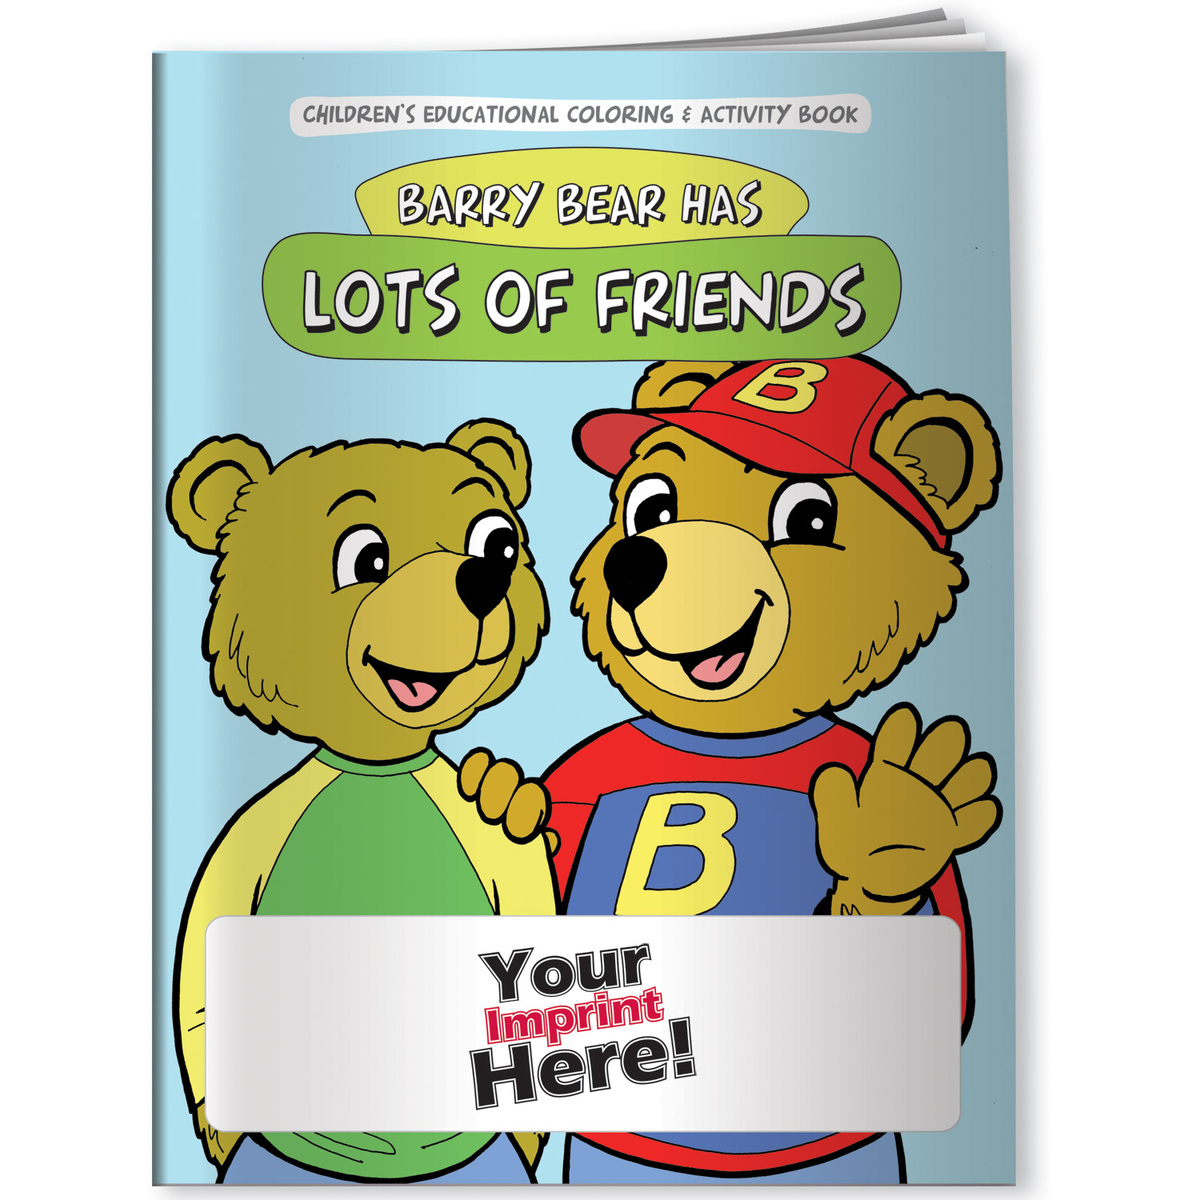 Children's Coloring Book - Barry Bear Has Lots of Friends